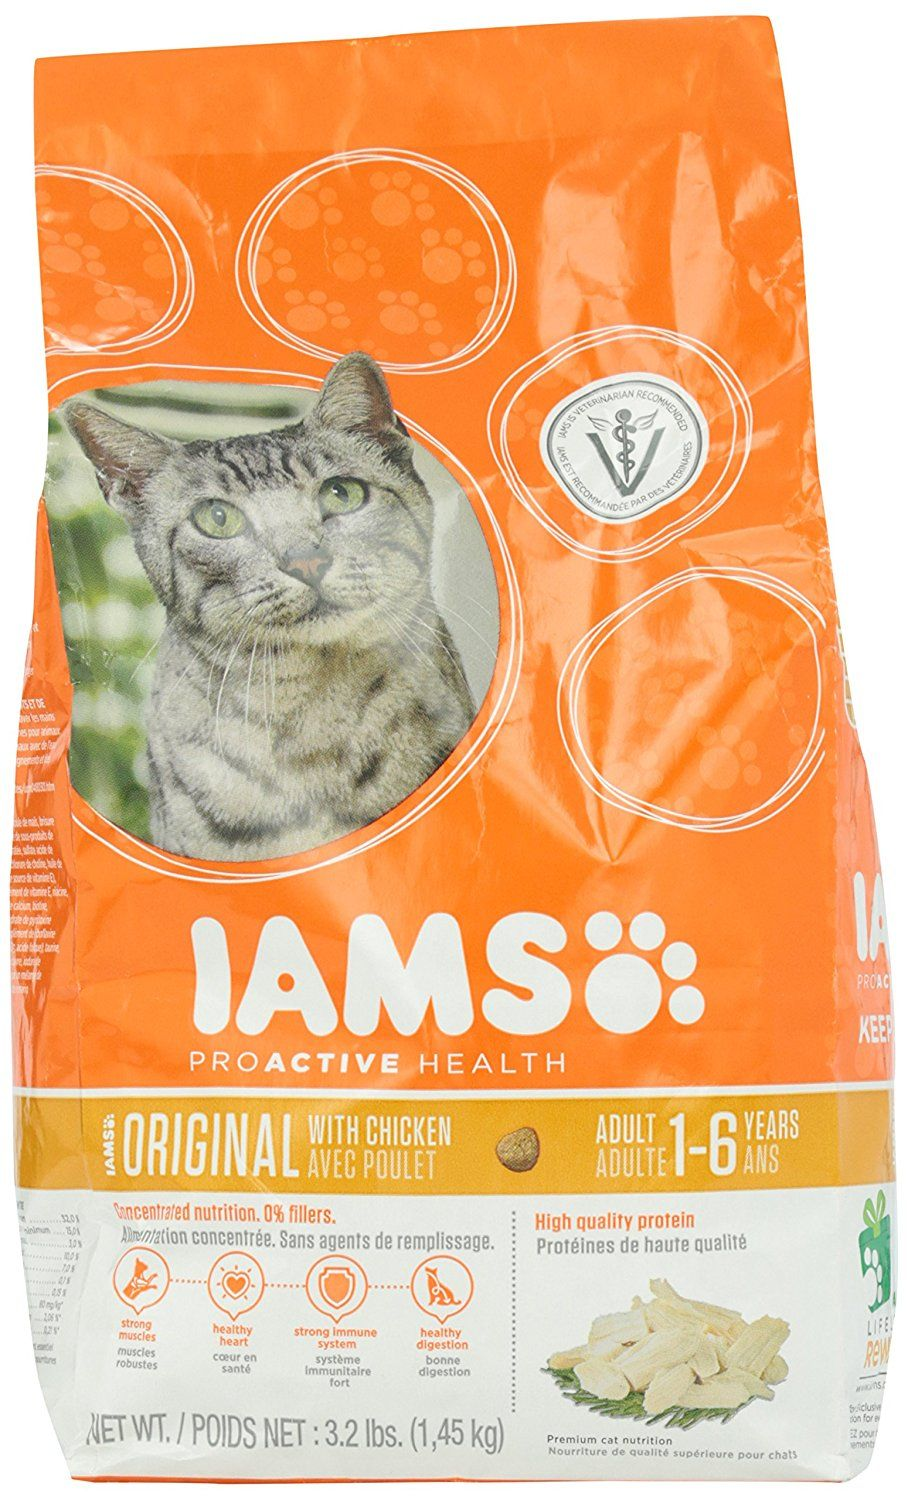 Iams Original Formula Dry 1 6 Years Old Cat Food 3 2lbs Cats Food Cat Food Best Cat Food Dry Cat Food